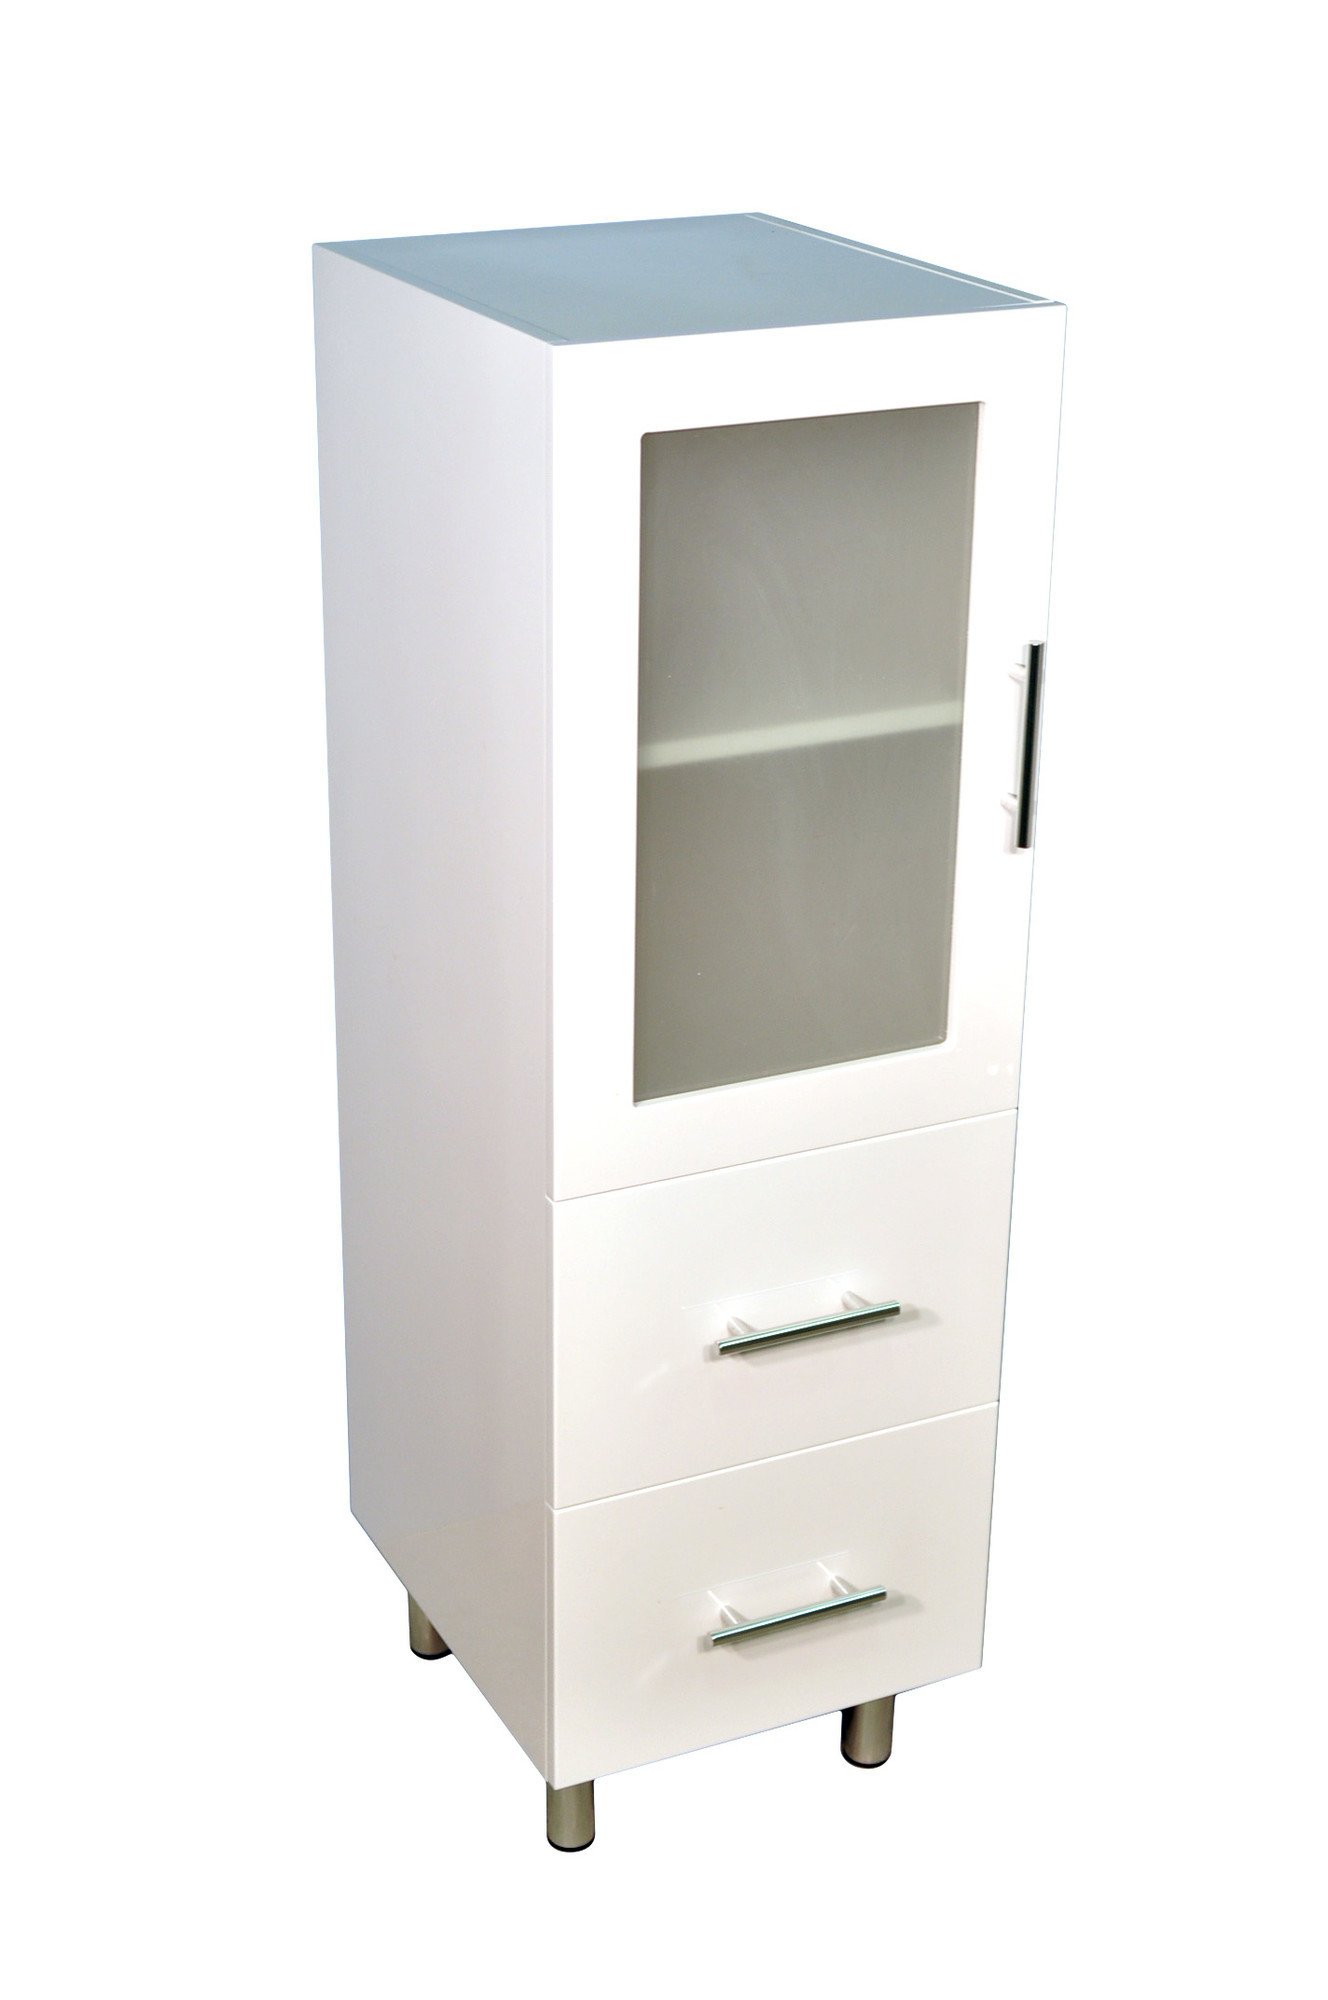 Bathroom Drawers New 1200 Tall Boy Bathroom Cabinet With Two Drawers Ebay